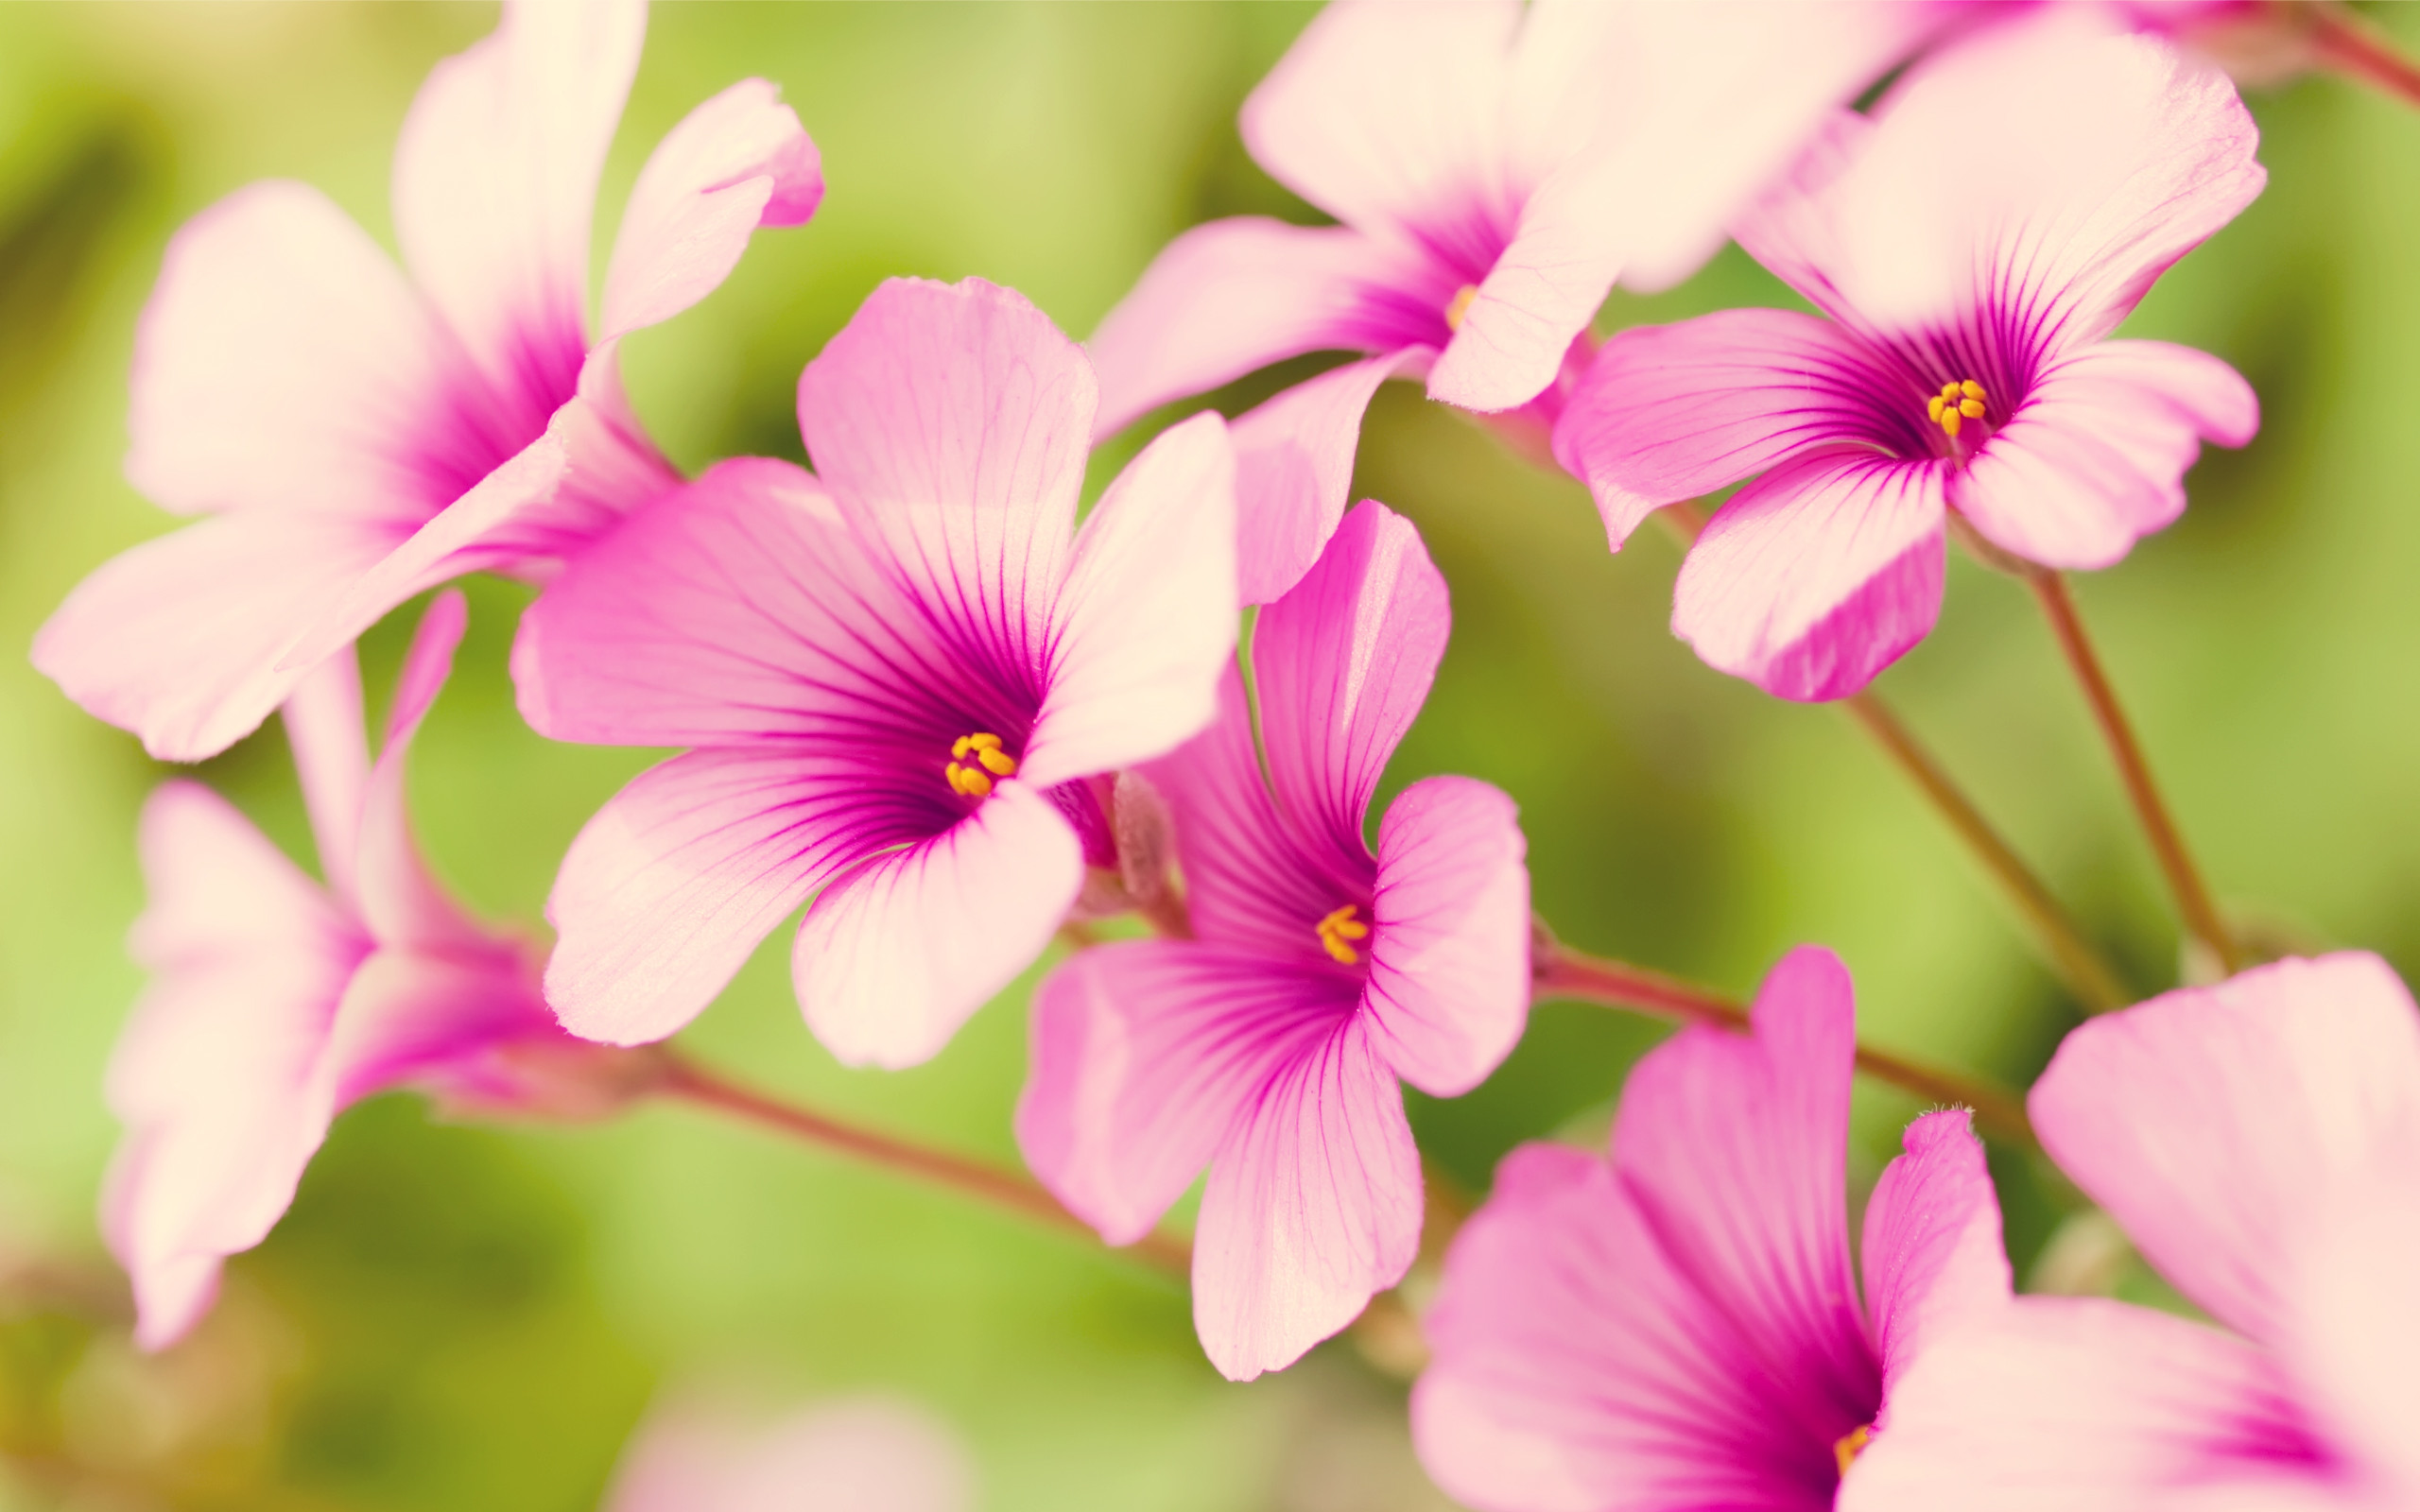 Pretty Flower Wallpaper 49 Images